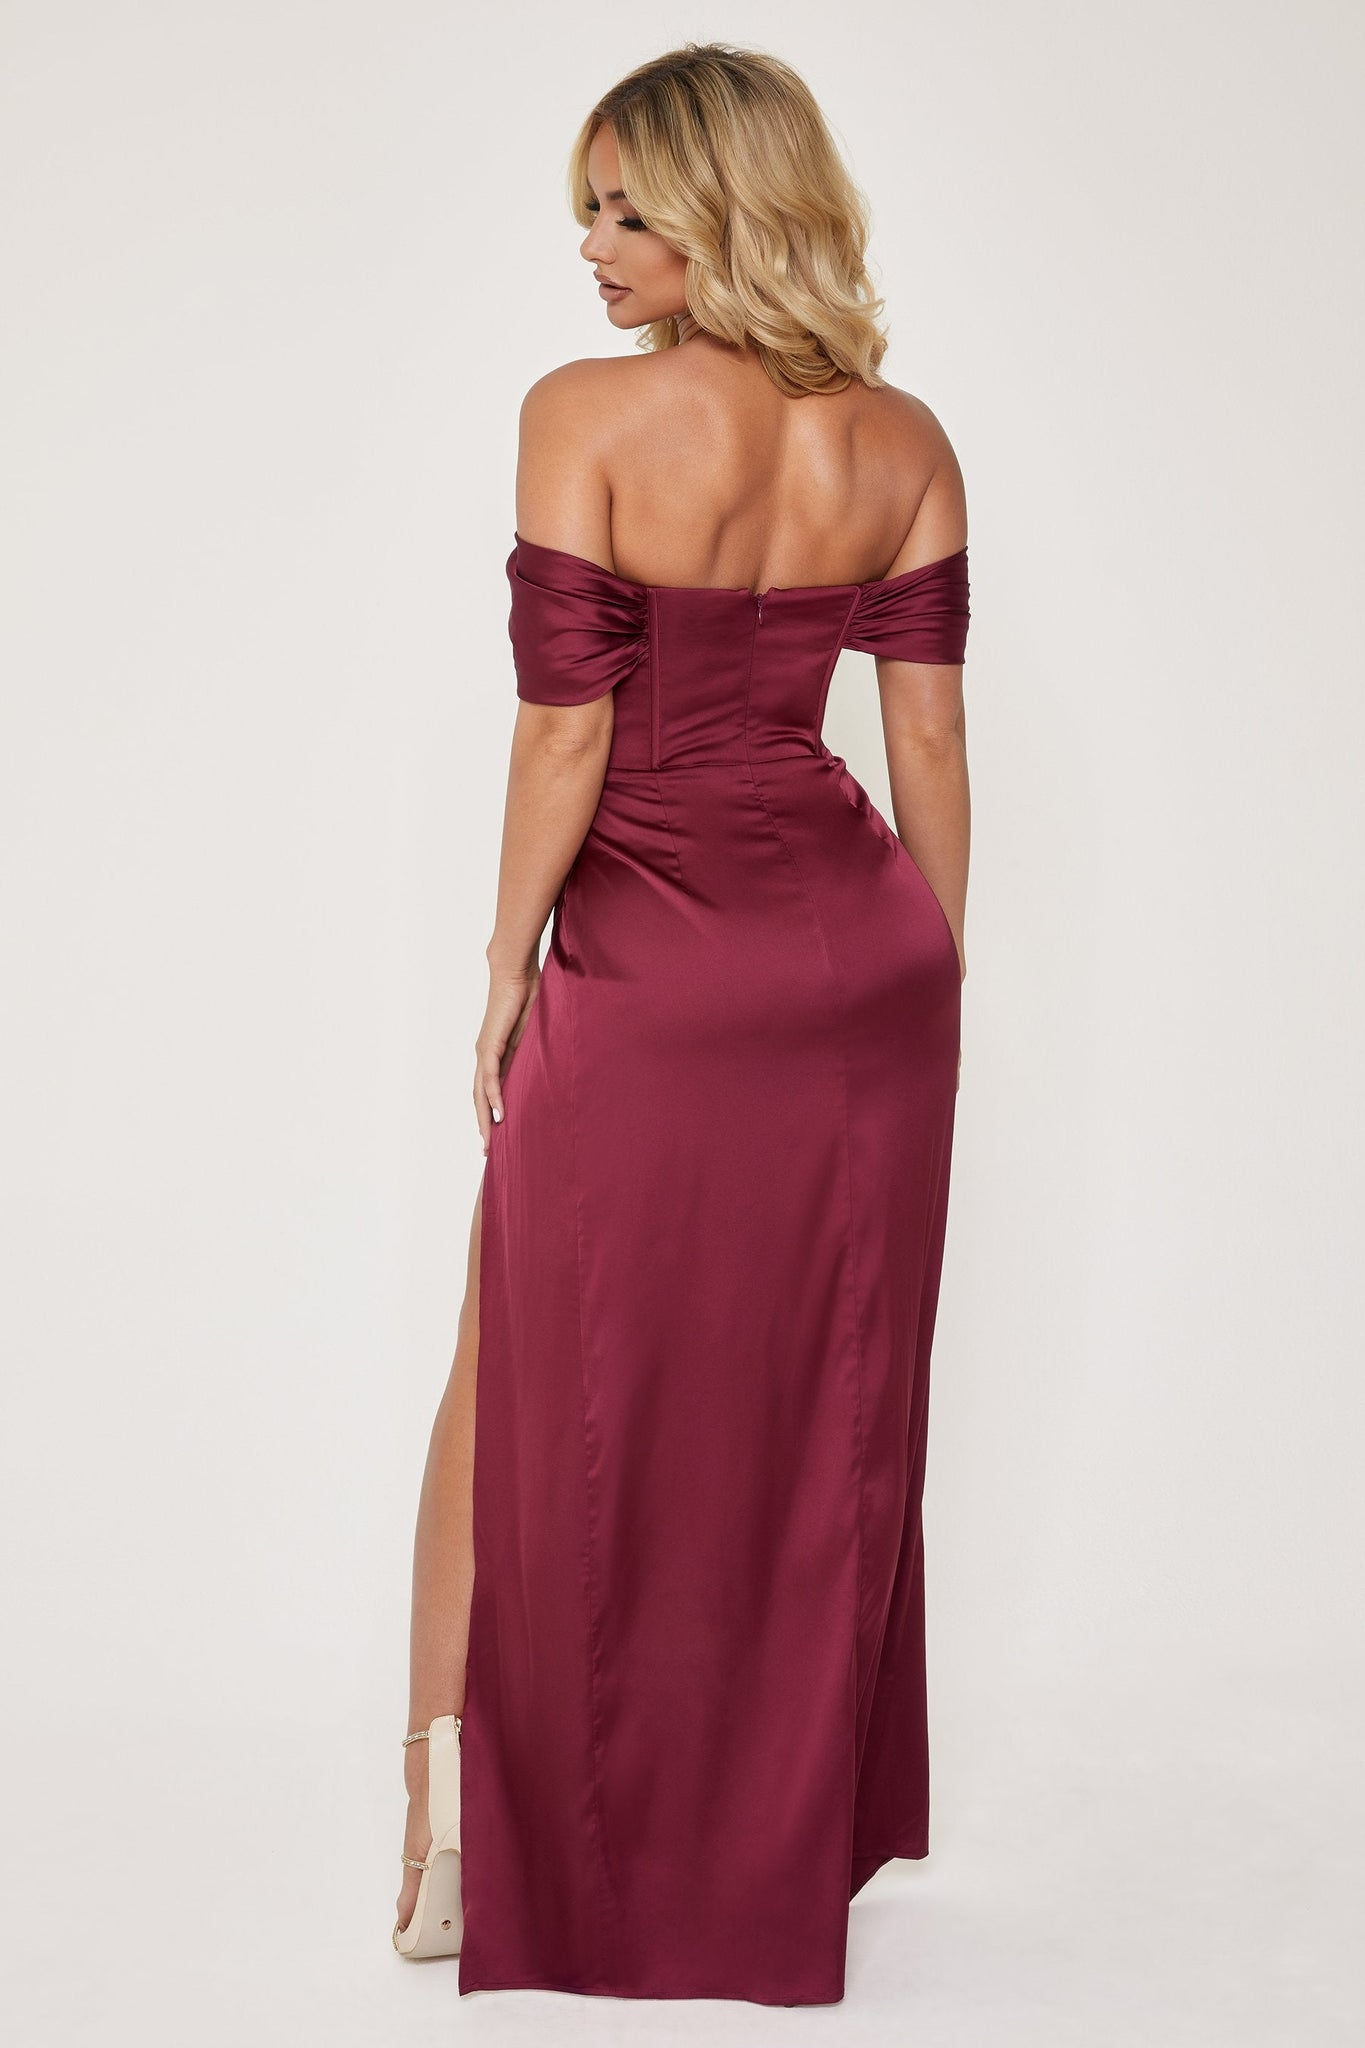 Neo Corsetted Drape Off Shoulder Maxi Dress - Burgundy - MESHKI